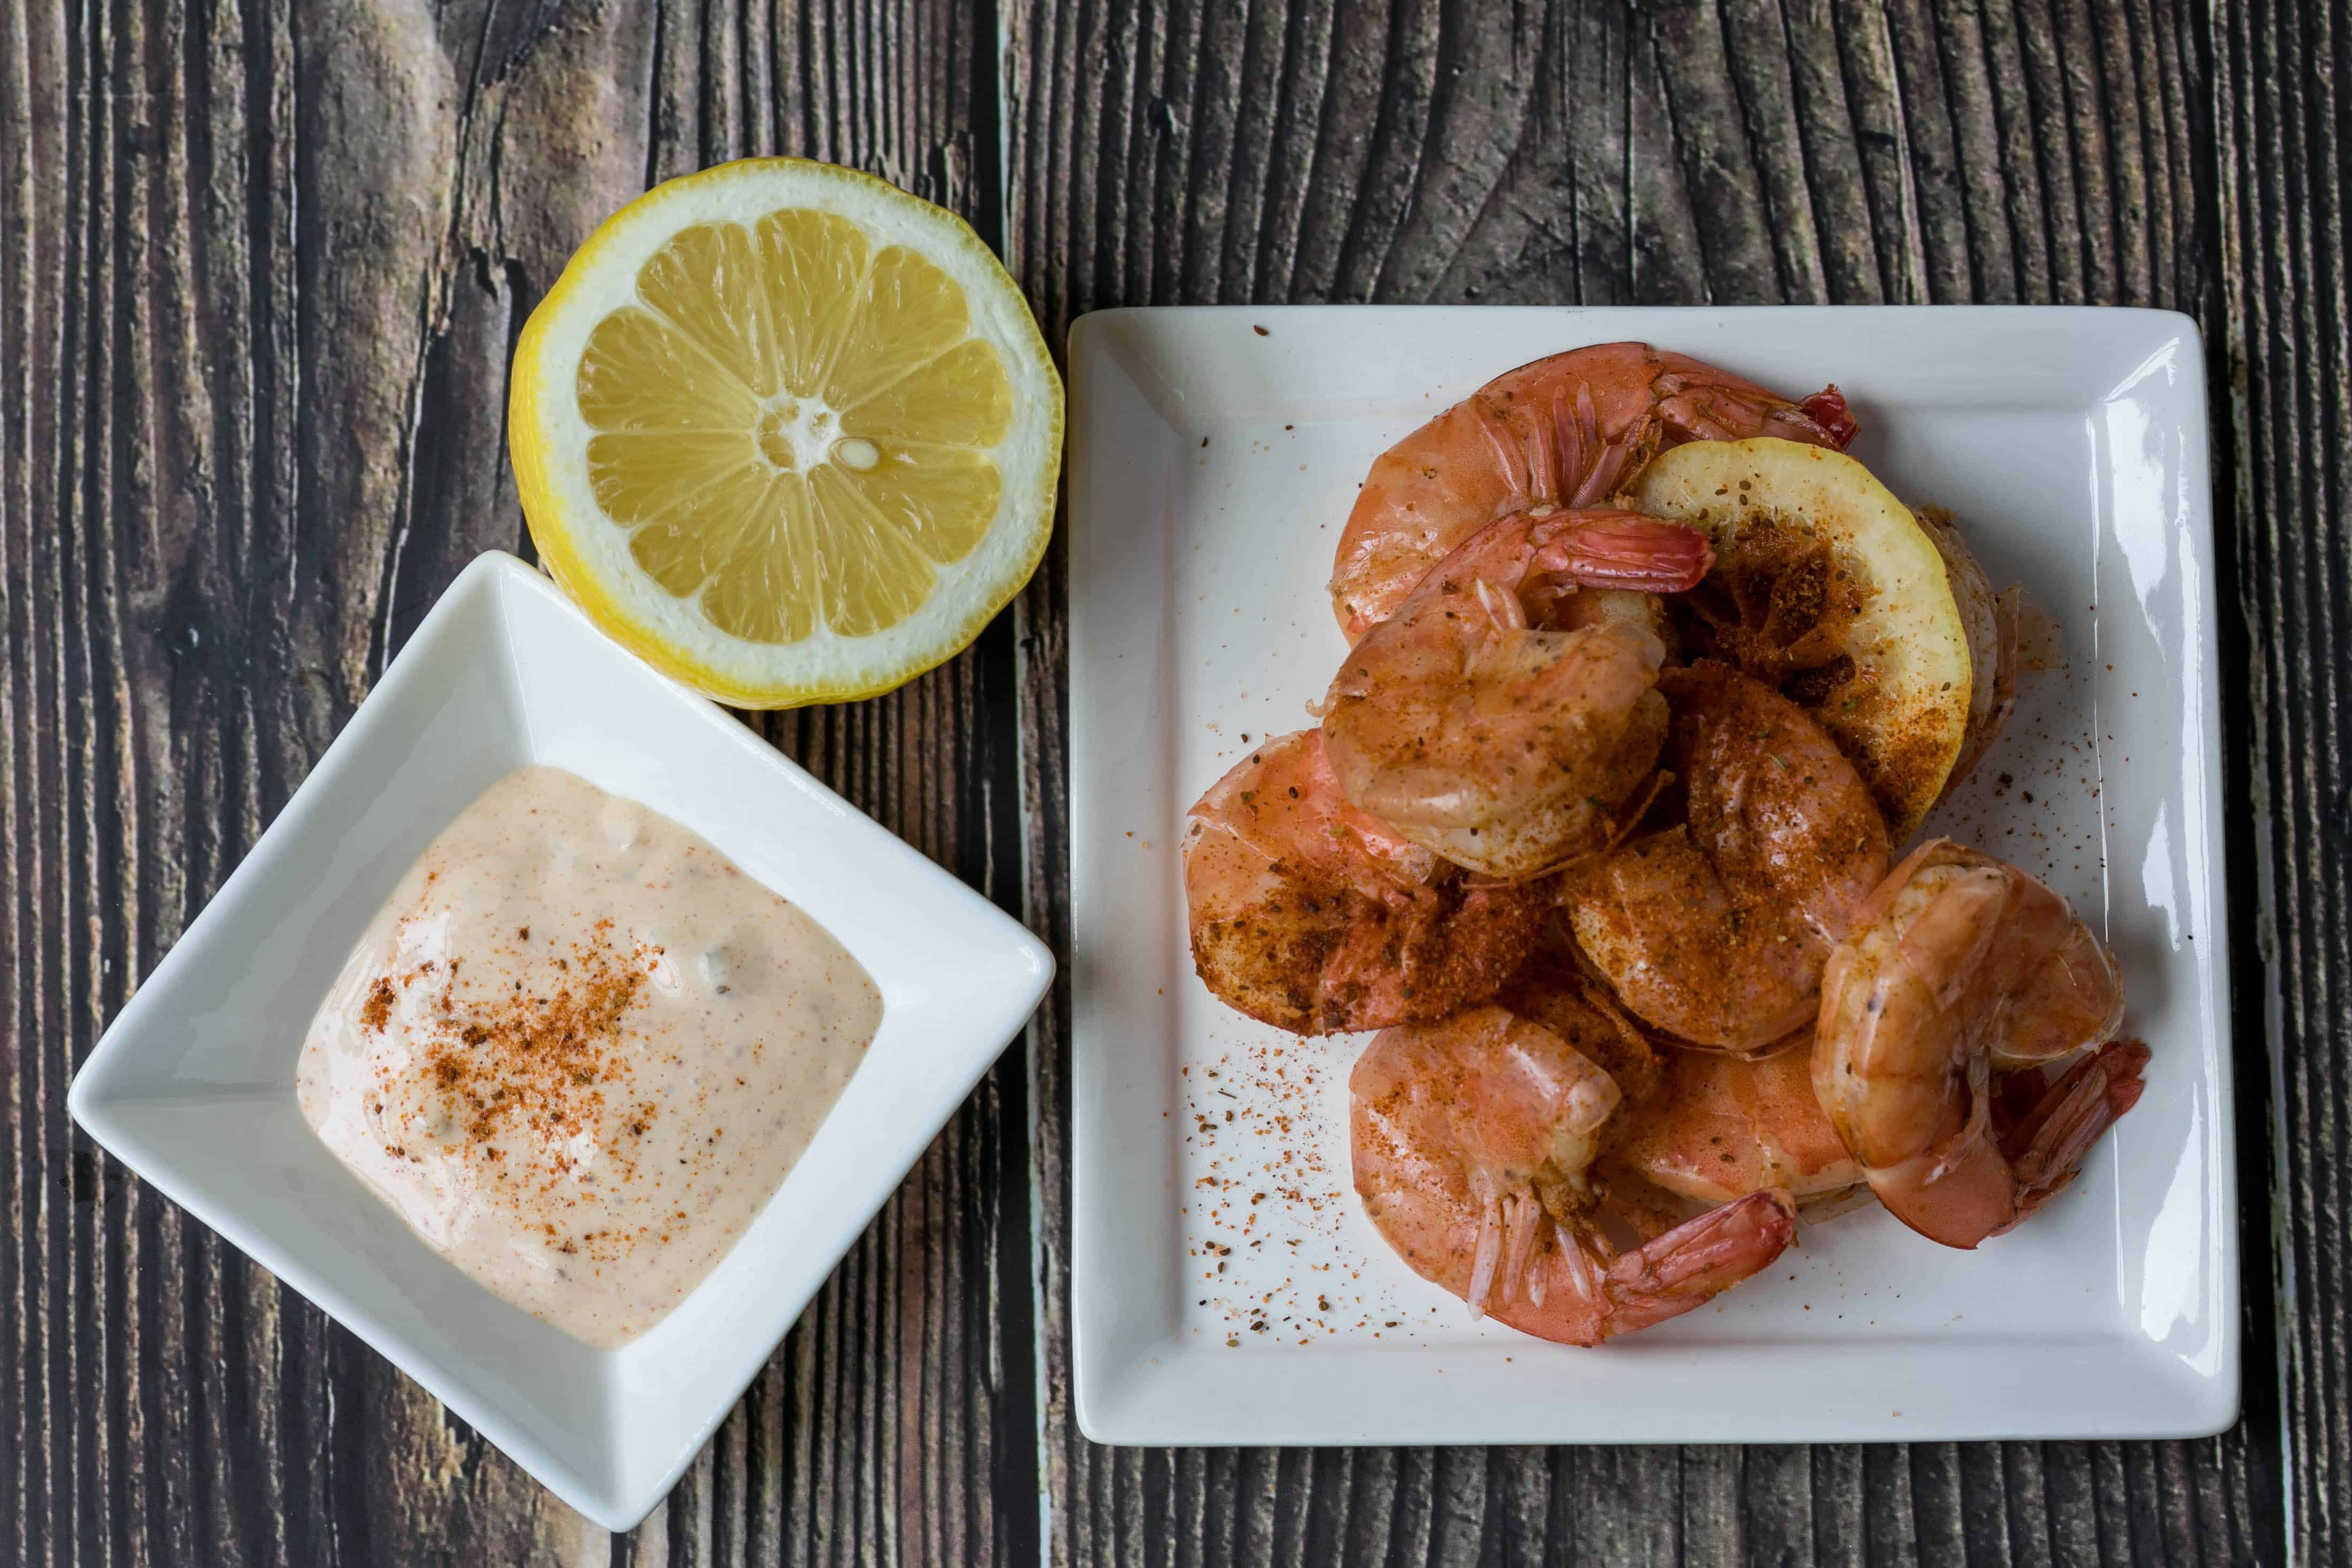 old bay spiced shrimp next to dipping sauce and lemon